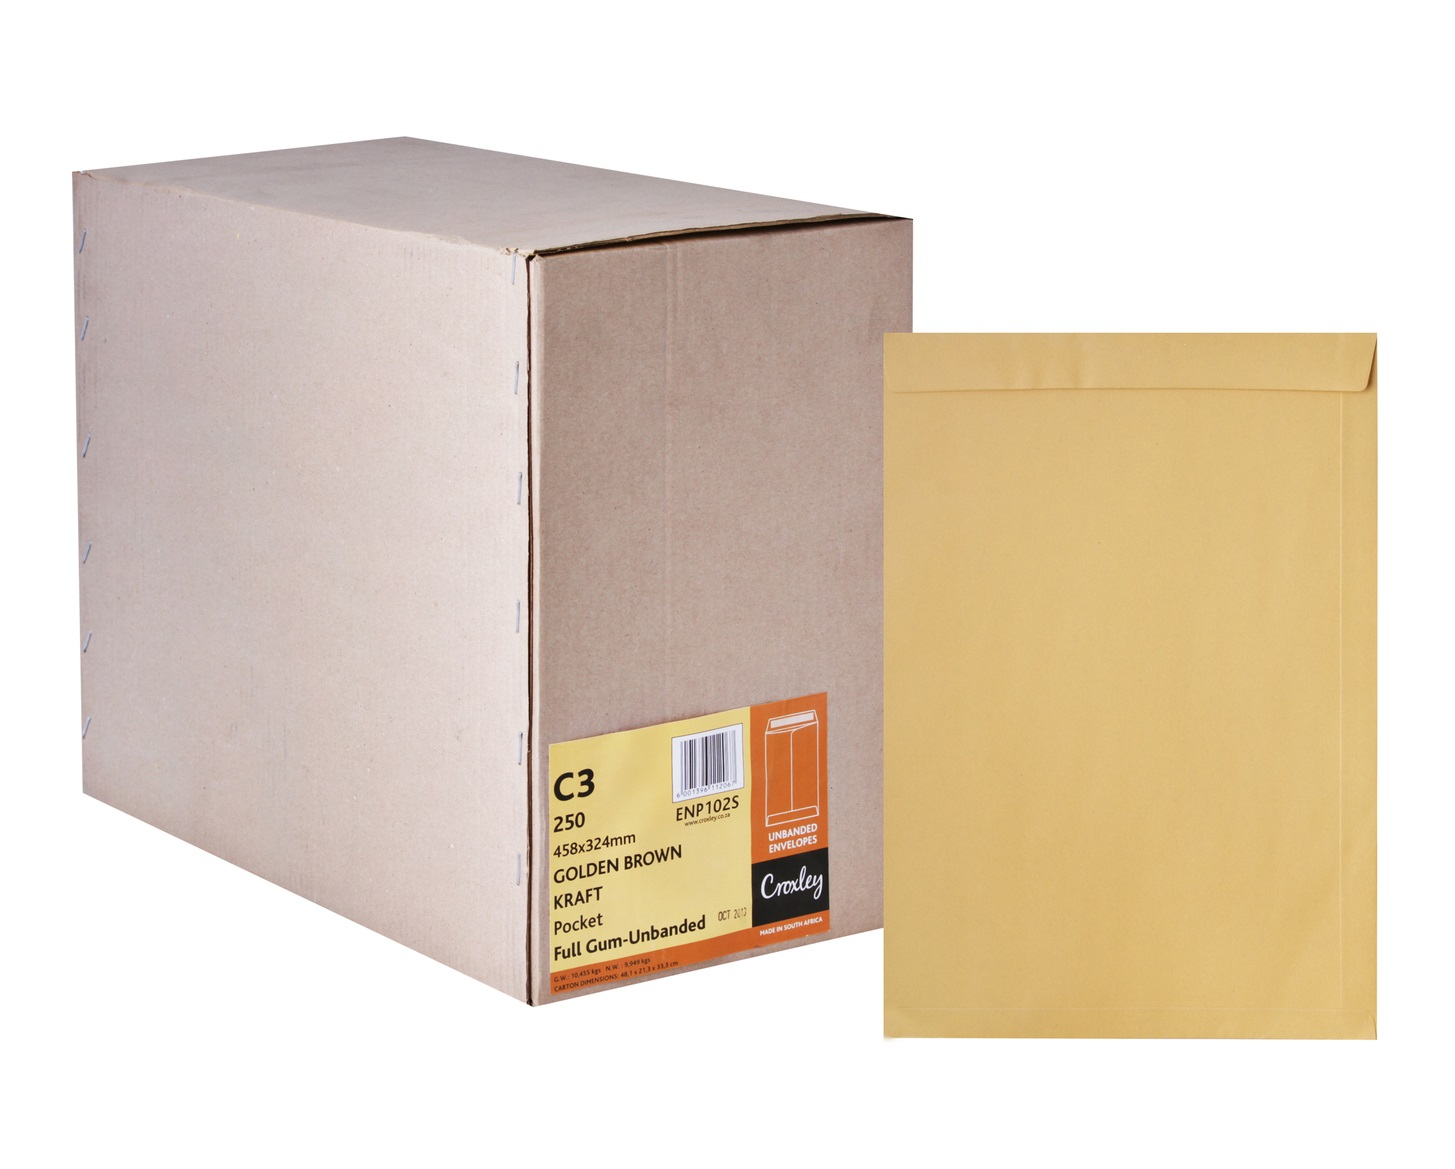 Croxley Envelopes C3 458 X 324 Full Gum Manilla